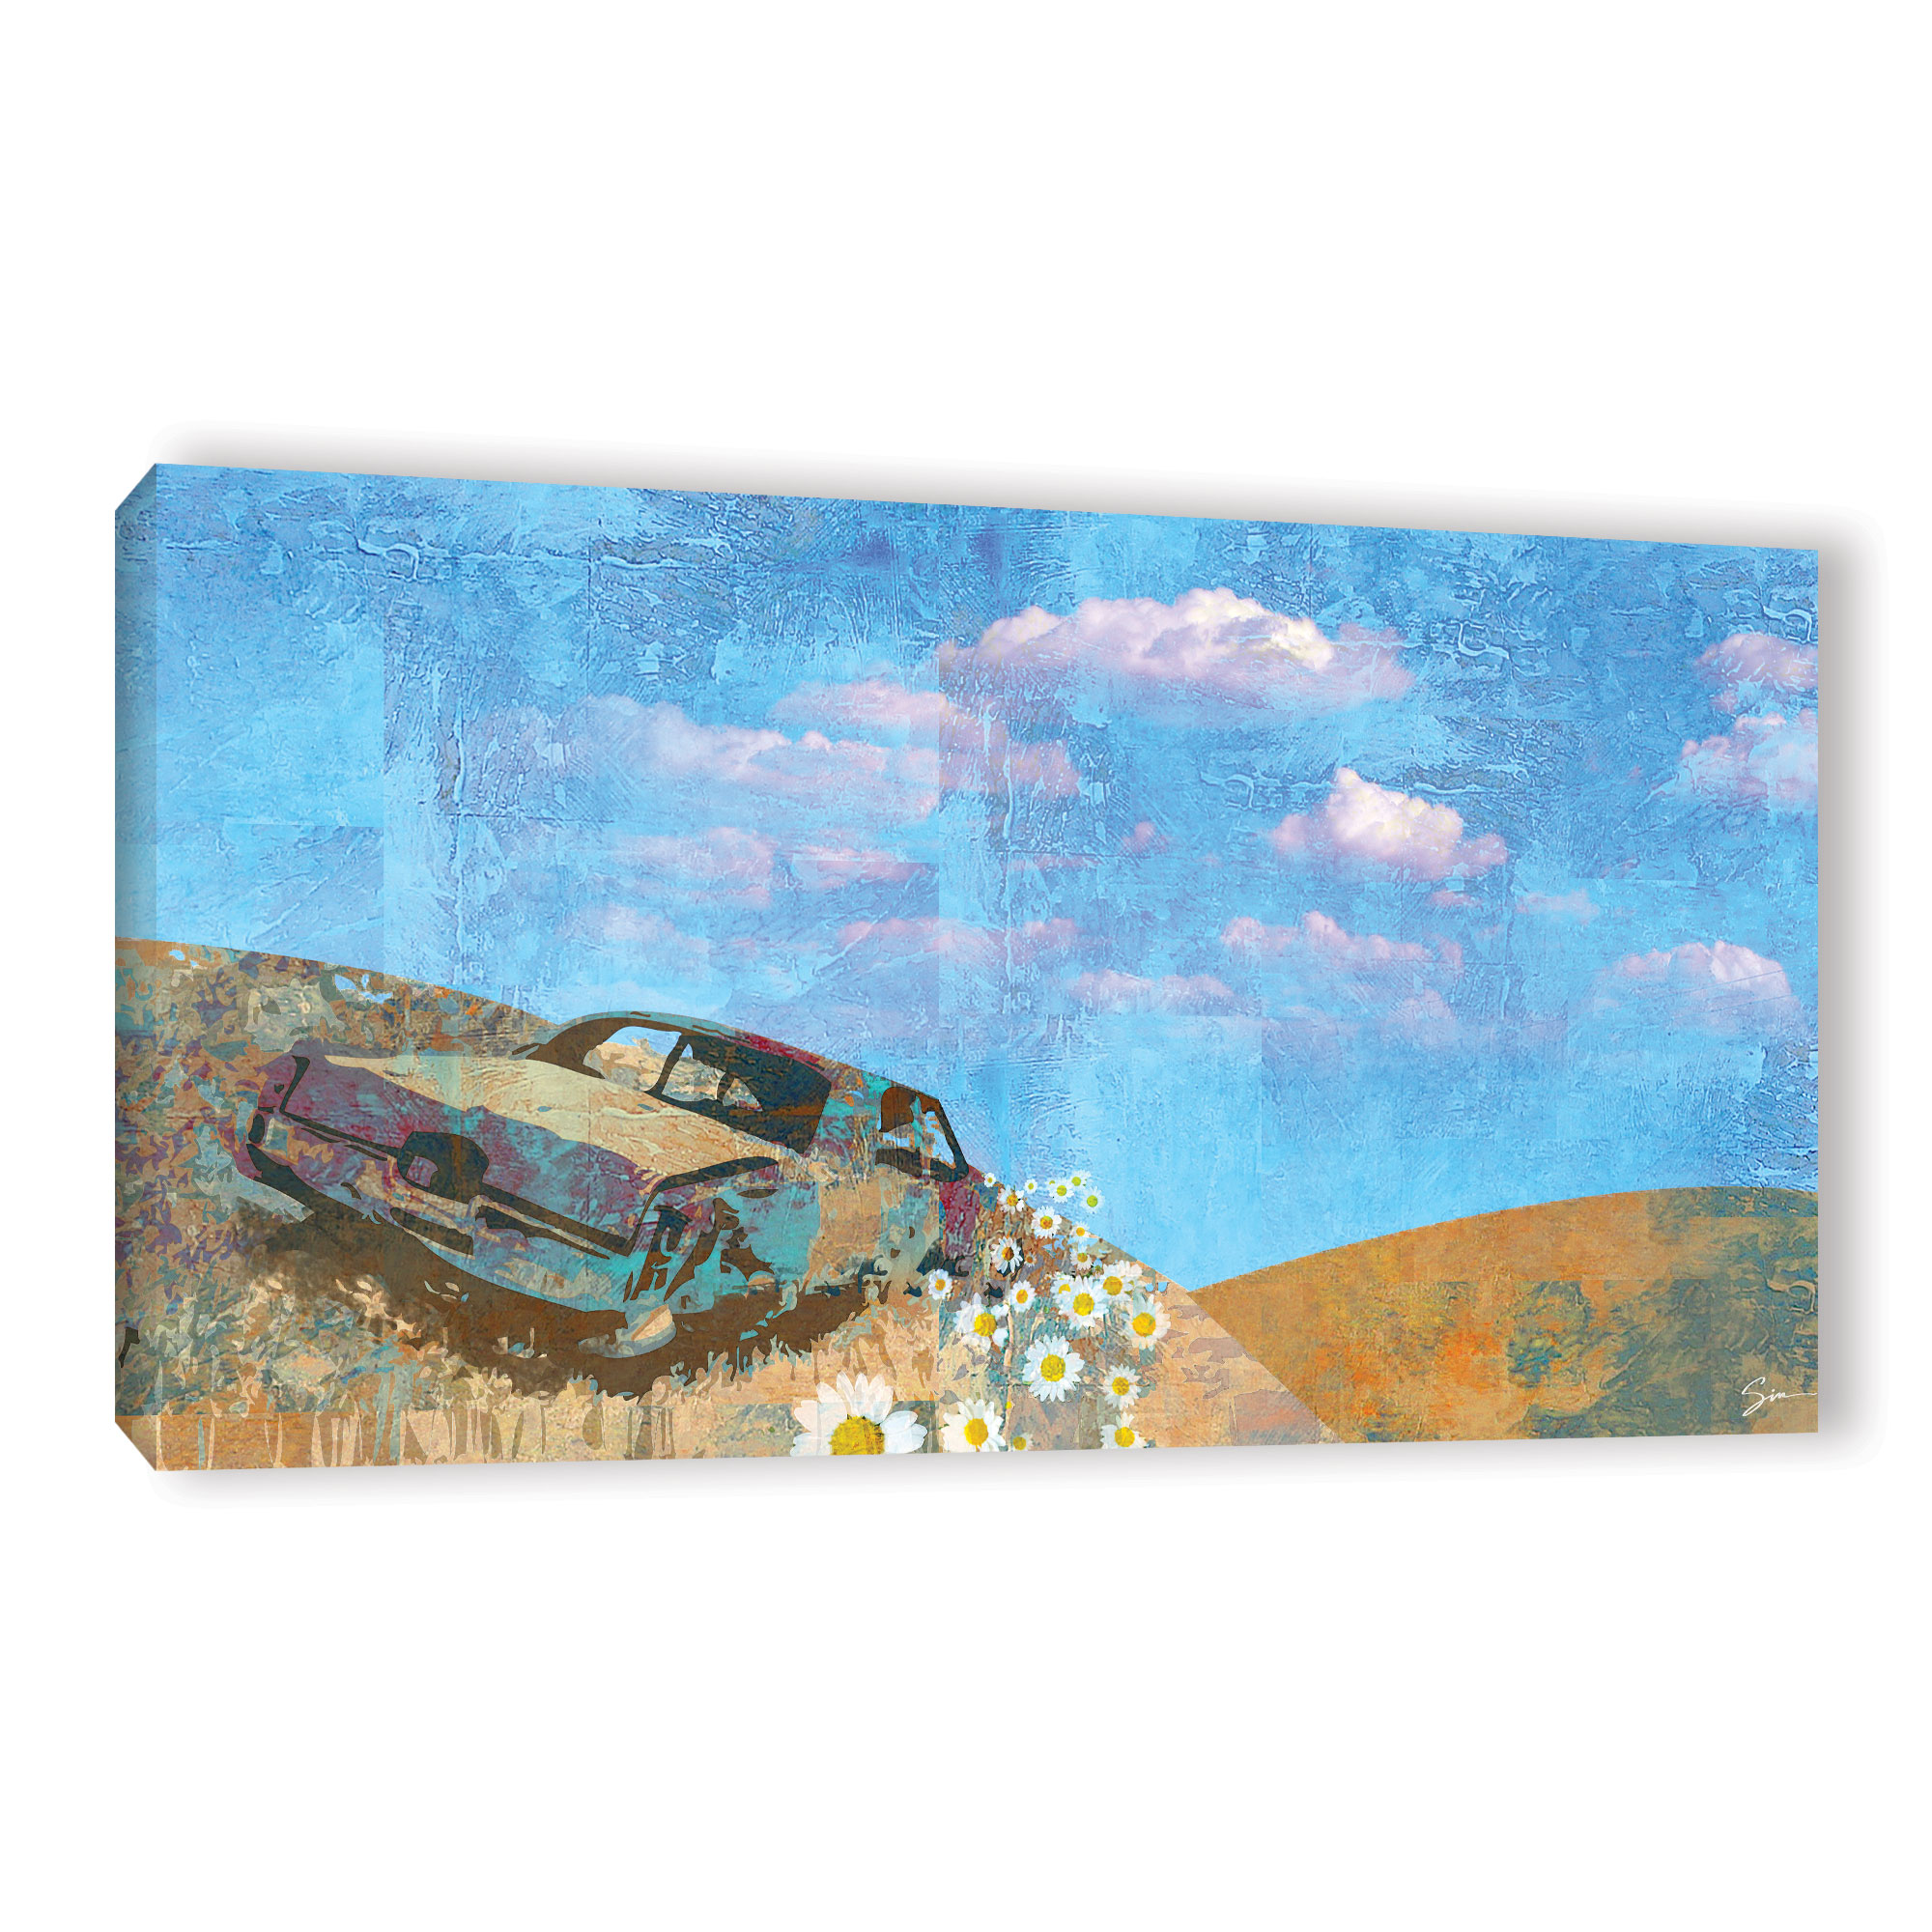 Rusted' Gallery wrapped Canvas Art Print